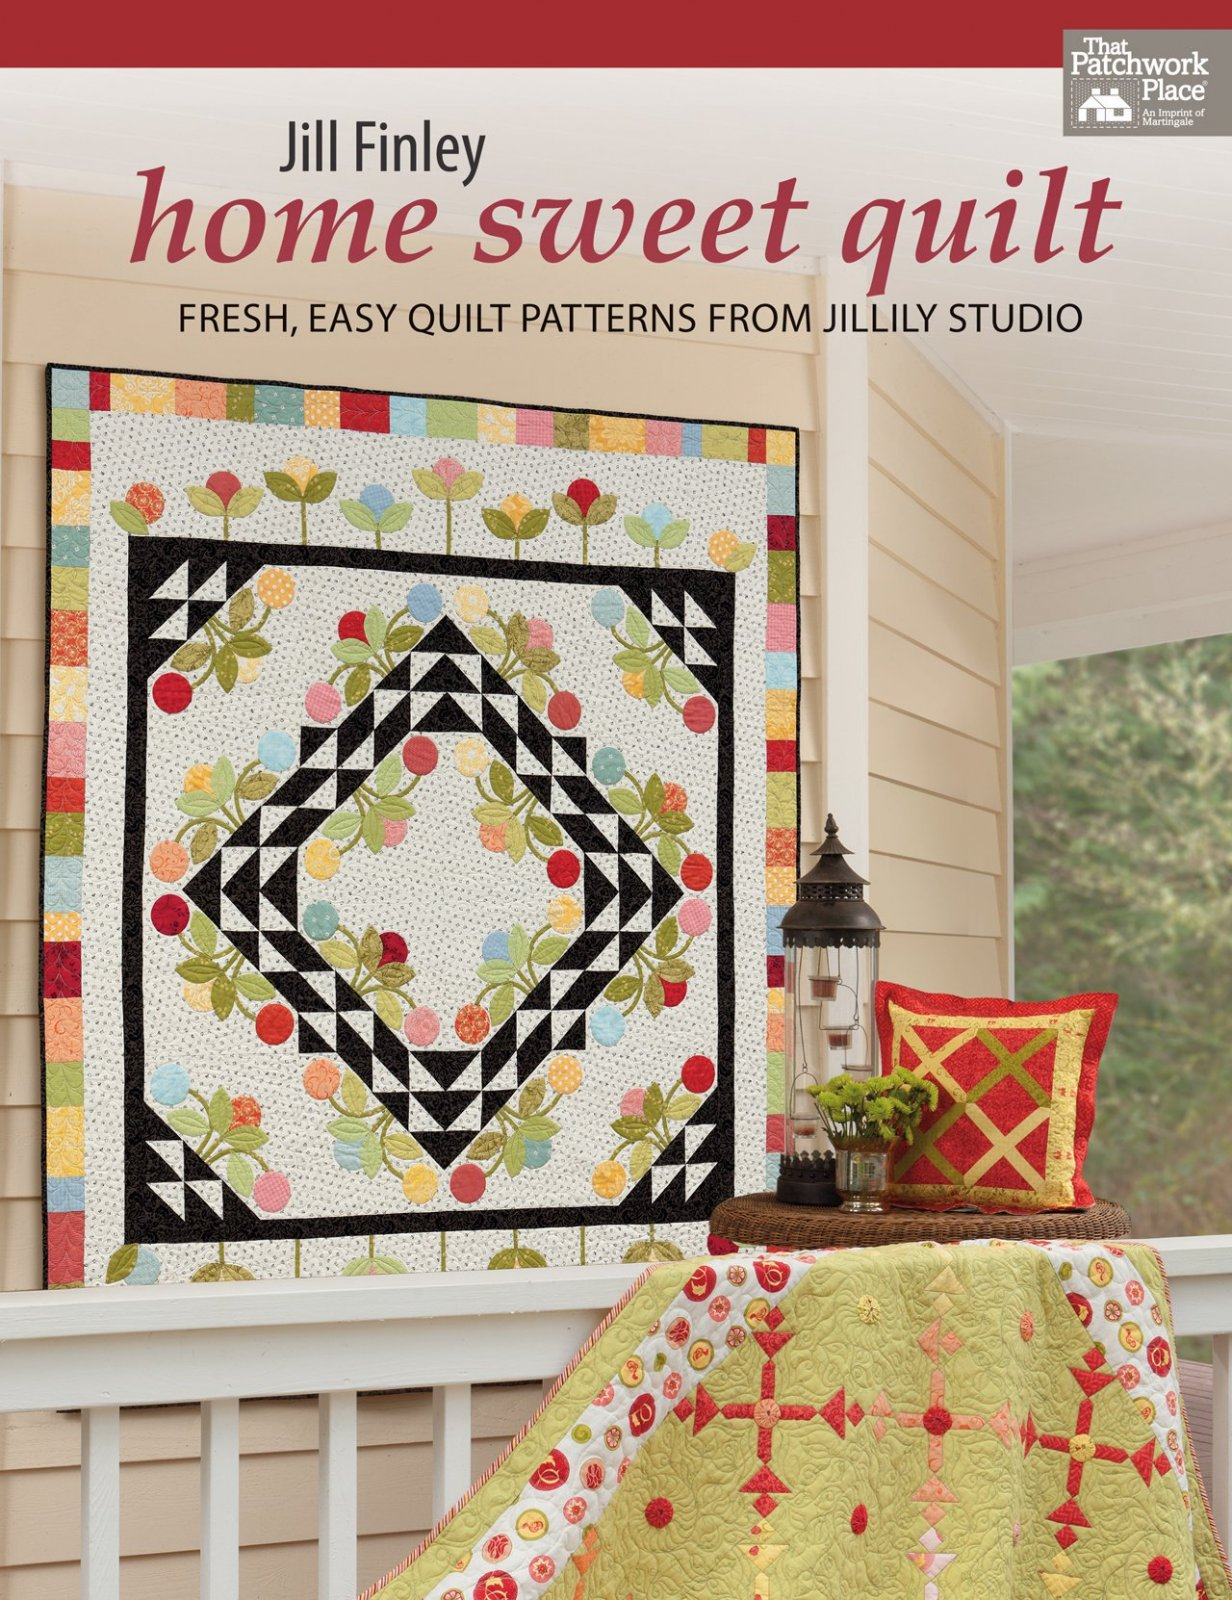 Home Sweet Quilt - Fresh, Easy Quilt Patterns from Jillily Studio